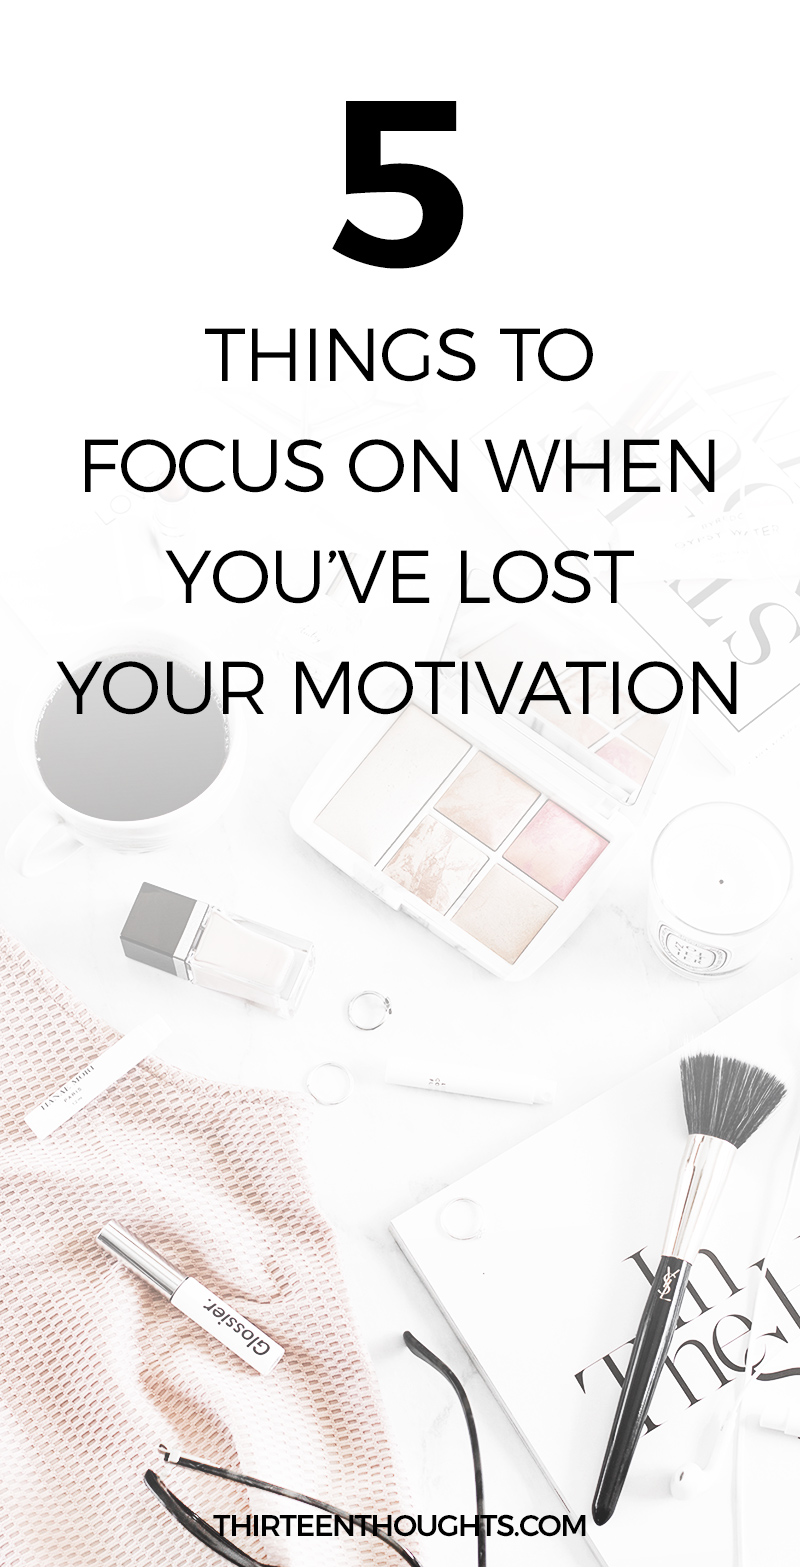 Things to do when you've lost your motivation